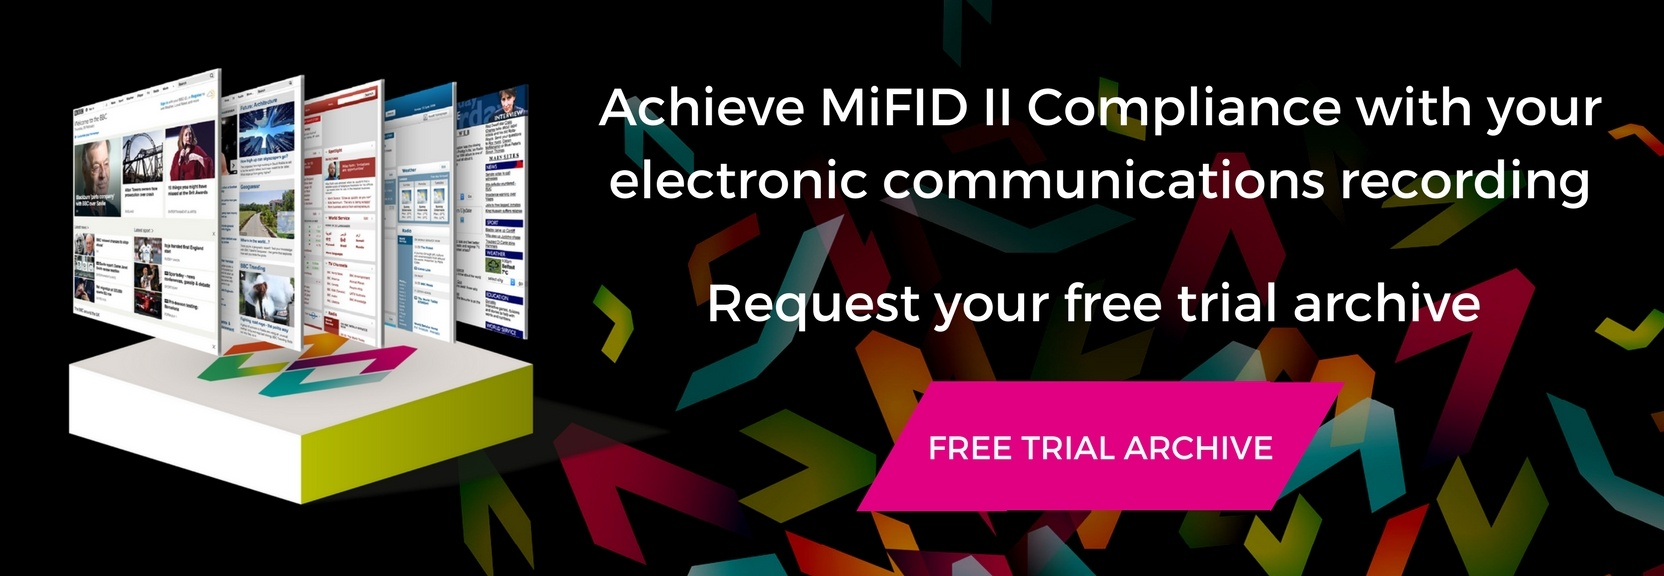 Achieve MiFID II compliance with your electronic communications recording - request your free trial archive